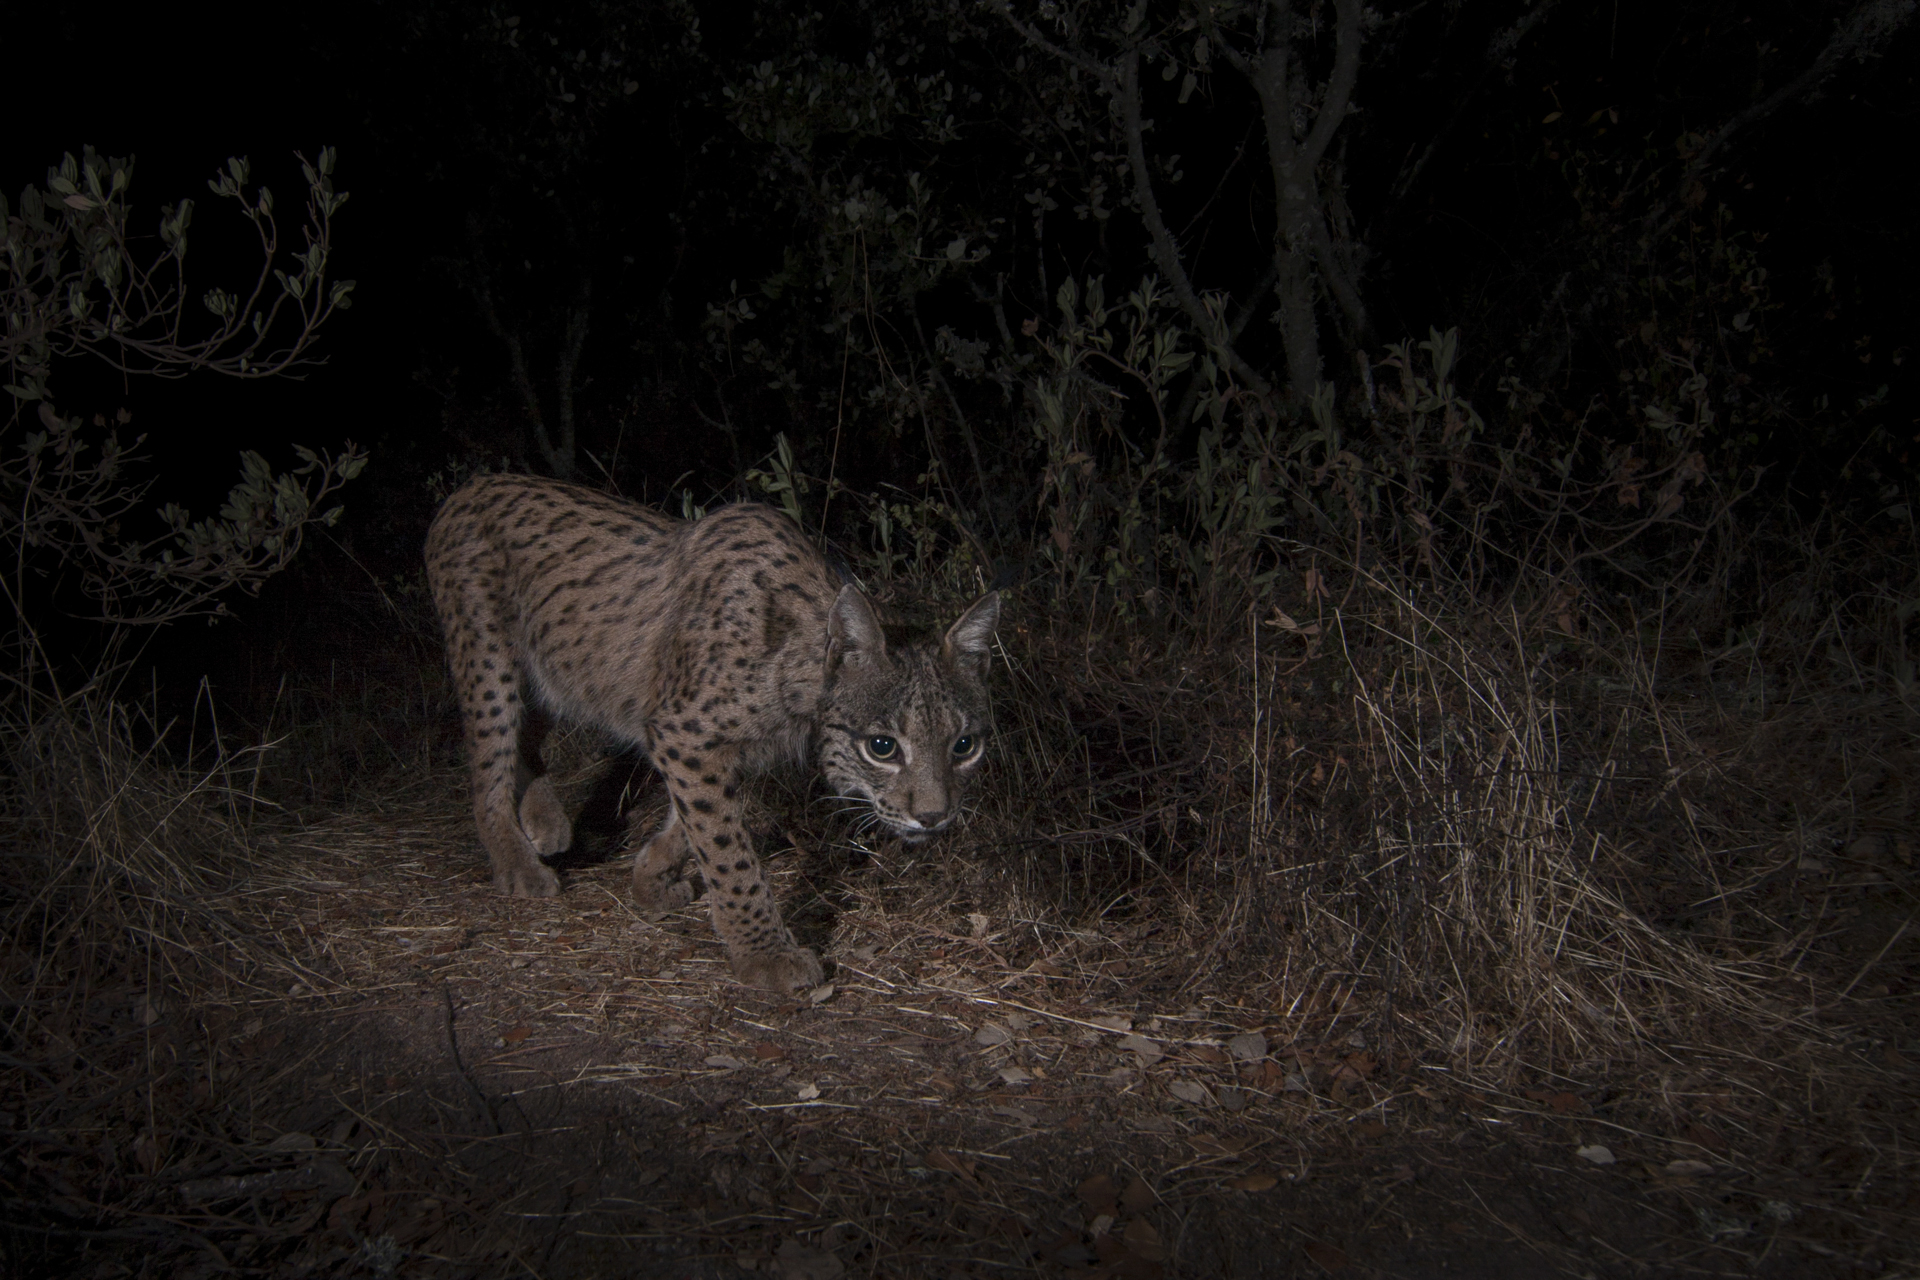 They are predominantly nocturnal, especially in the summer months when temperatures reach over 40C.